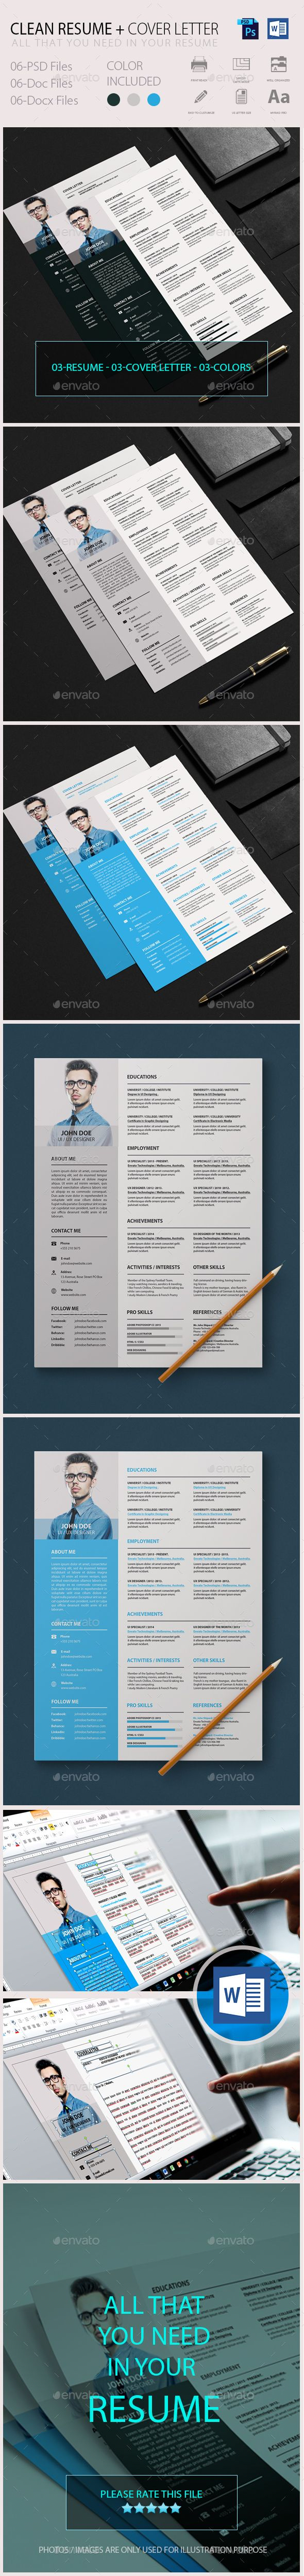 395 best Curriculum vitae images on Pinterest | Resume, Resume ...